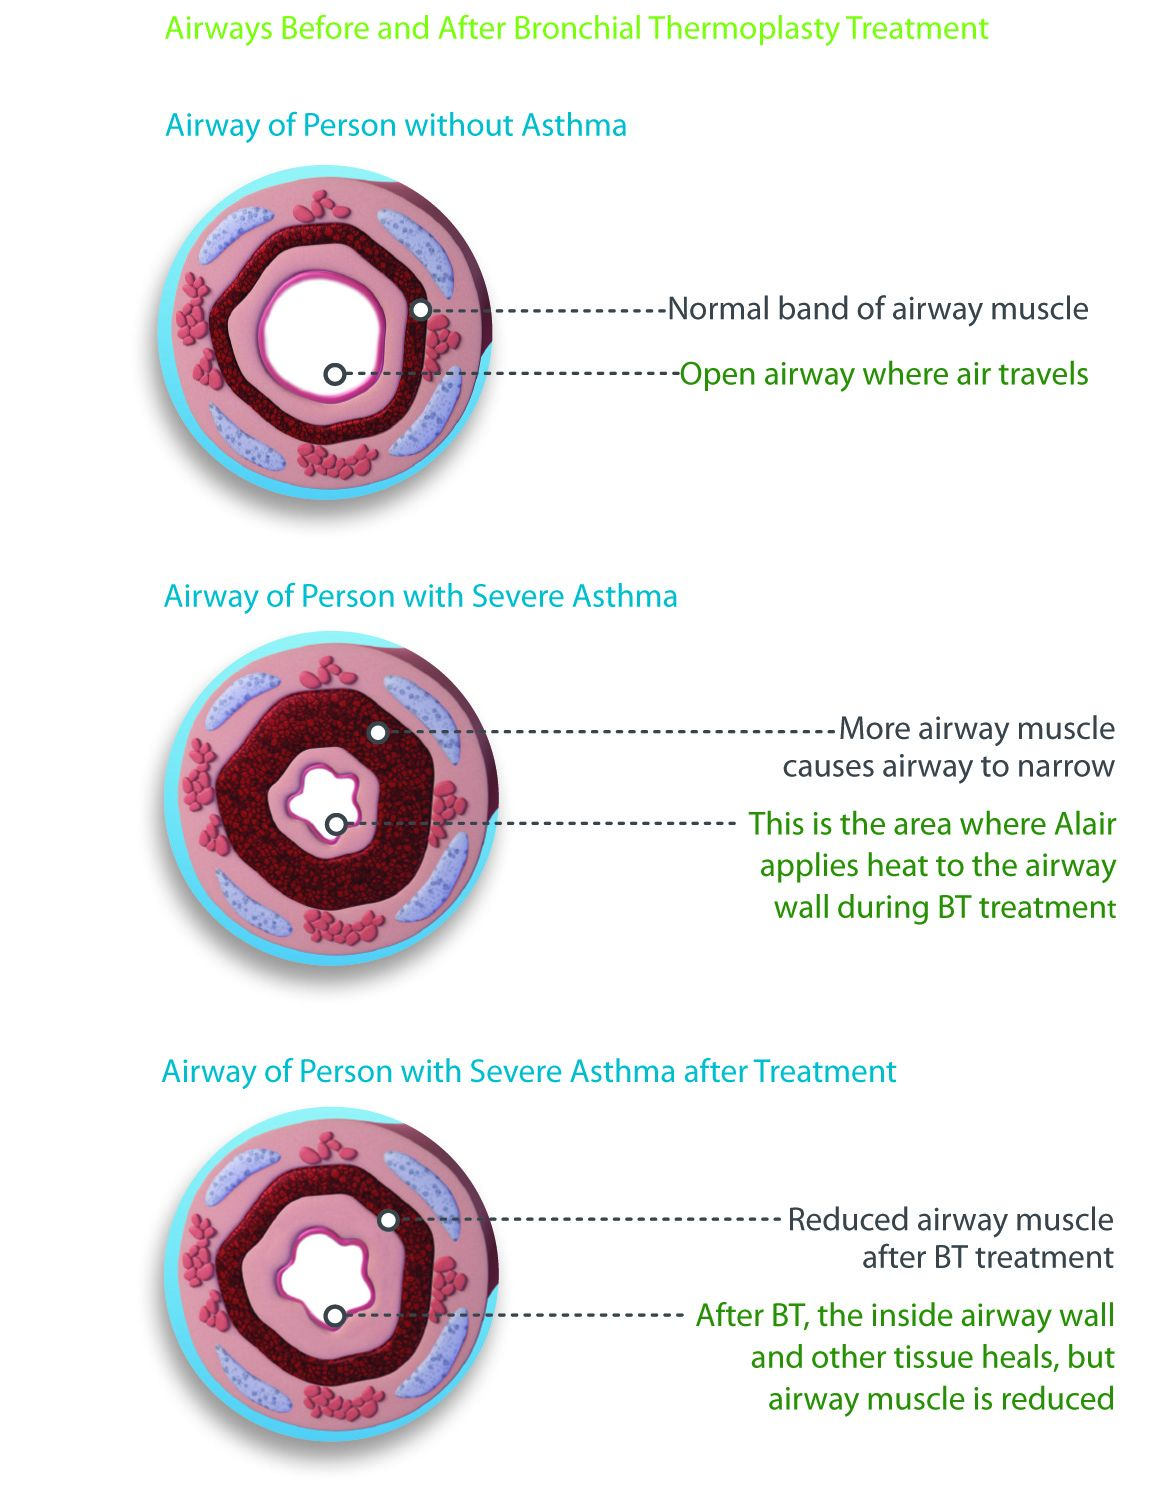 Various cross sections of airways, comparing those with asthma to those without.